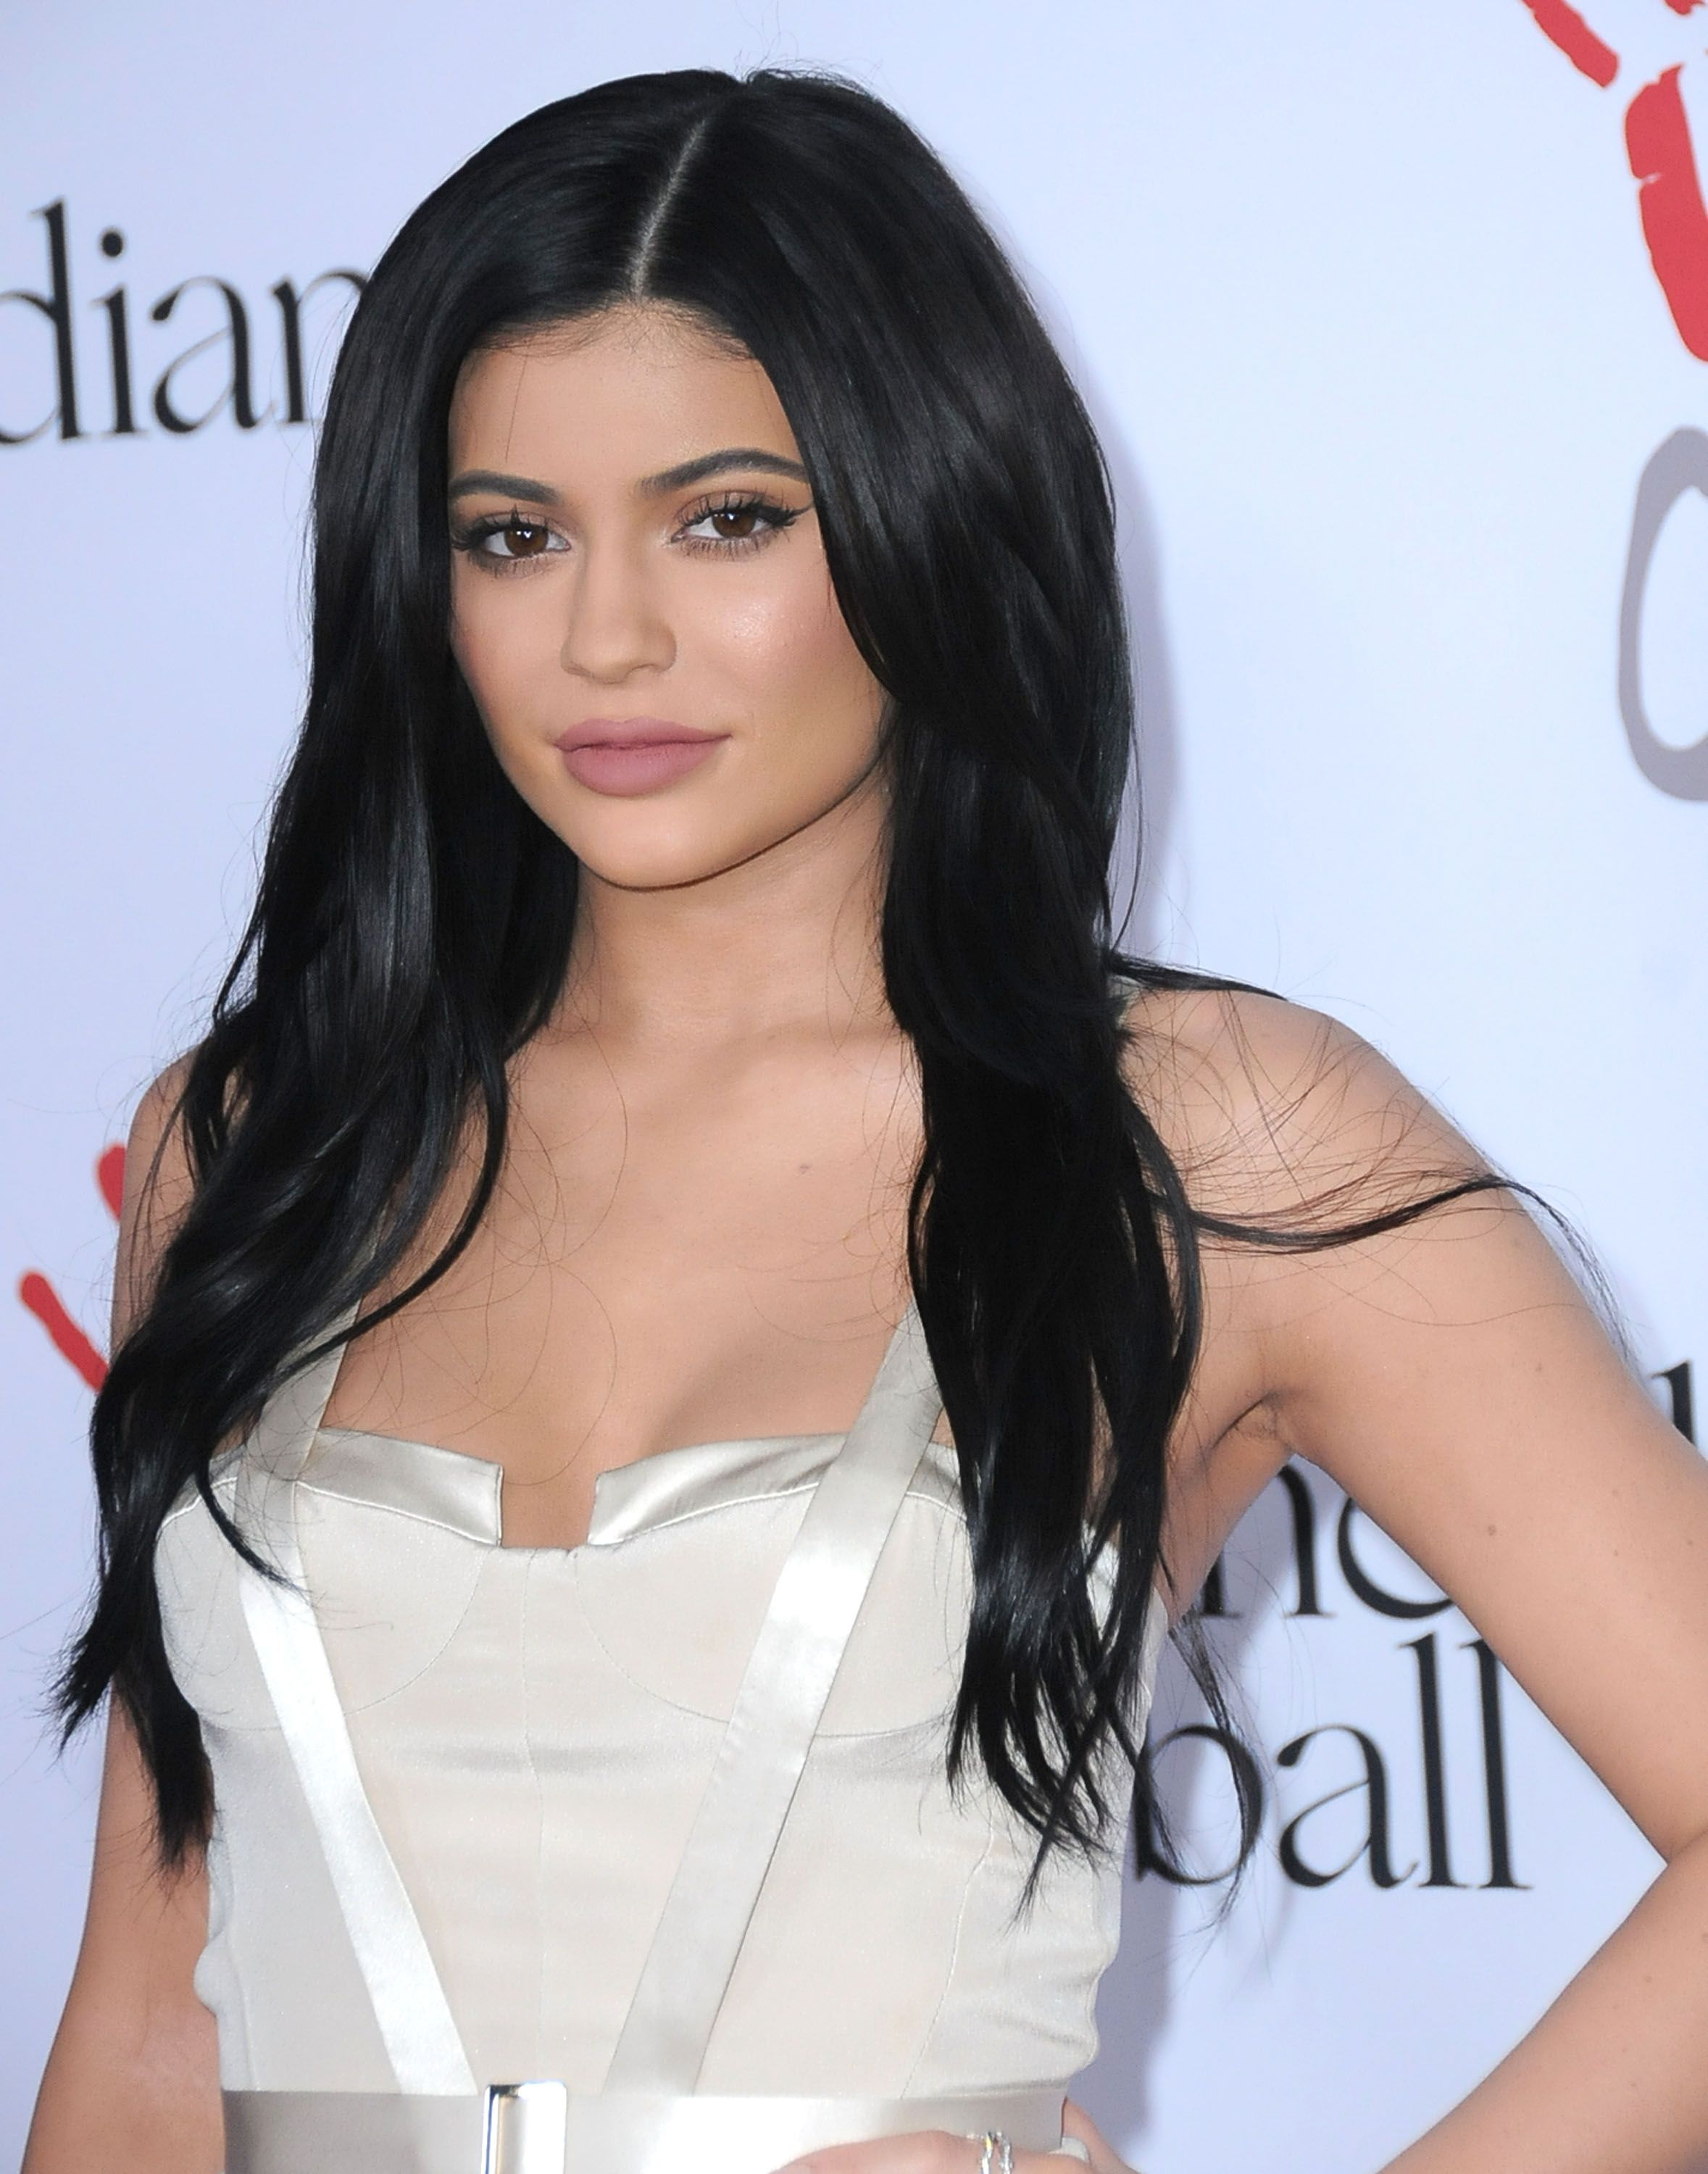 Kylie Jenner at the 2nd Annual Diamond Ball on December 10, 2015 in Santa Monica.   Photo: Getty Images